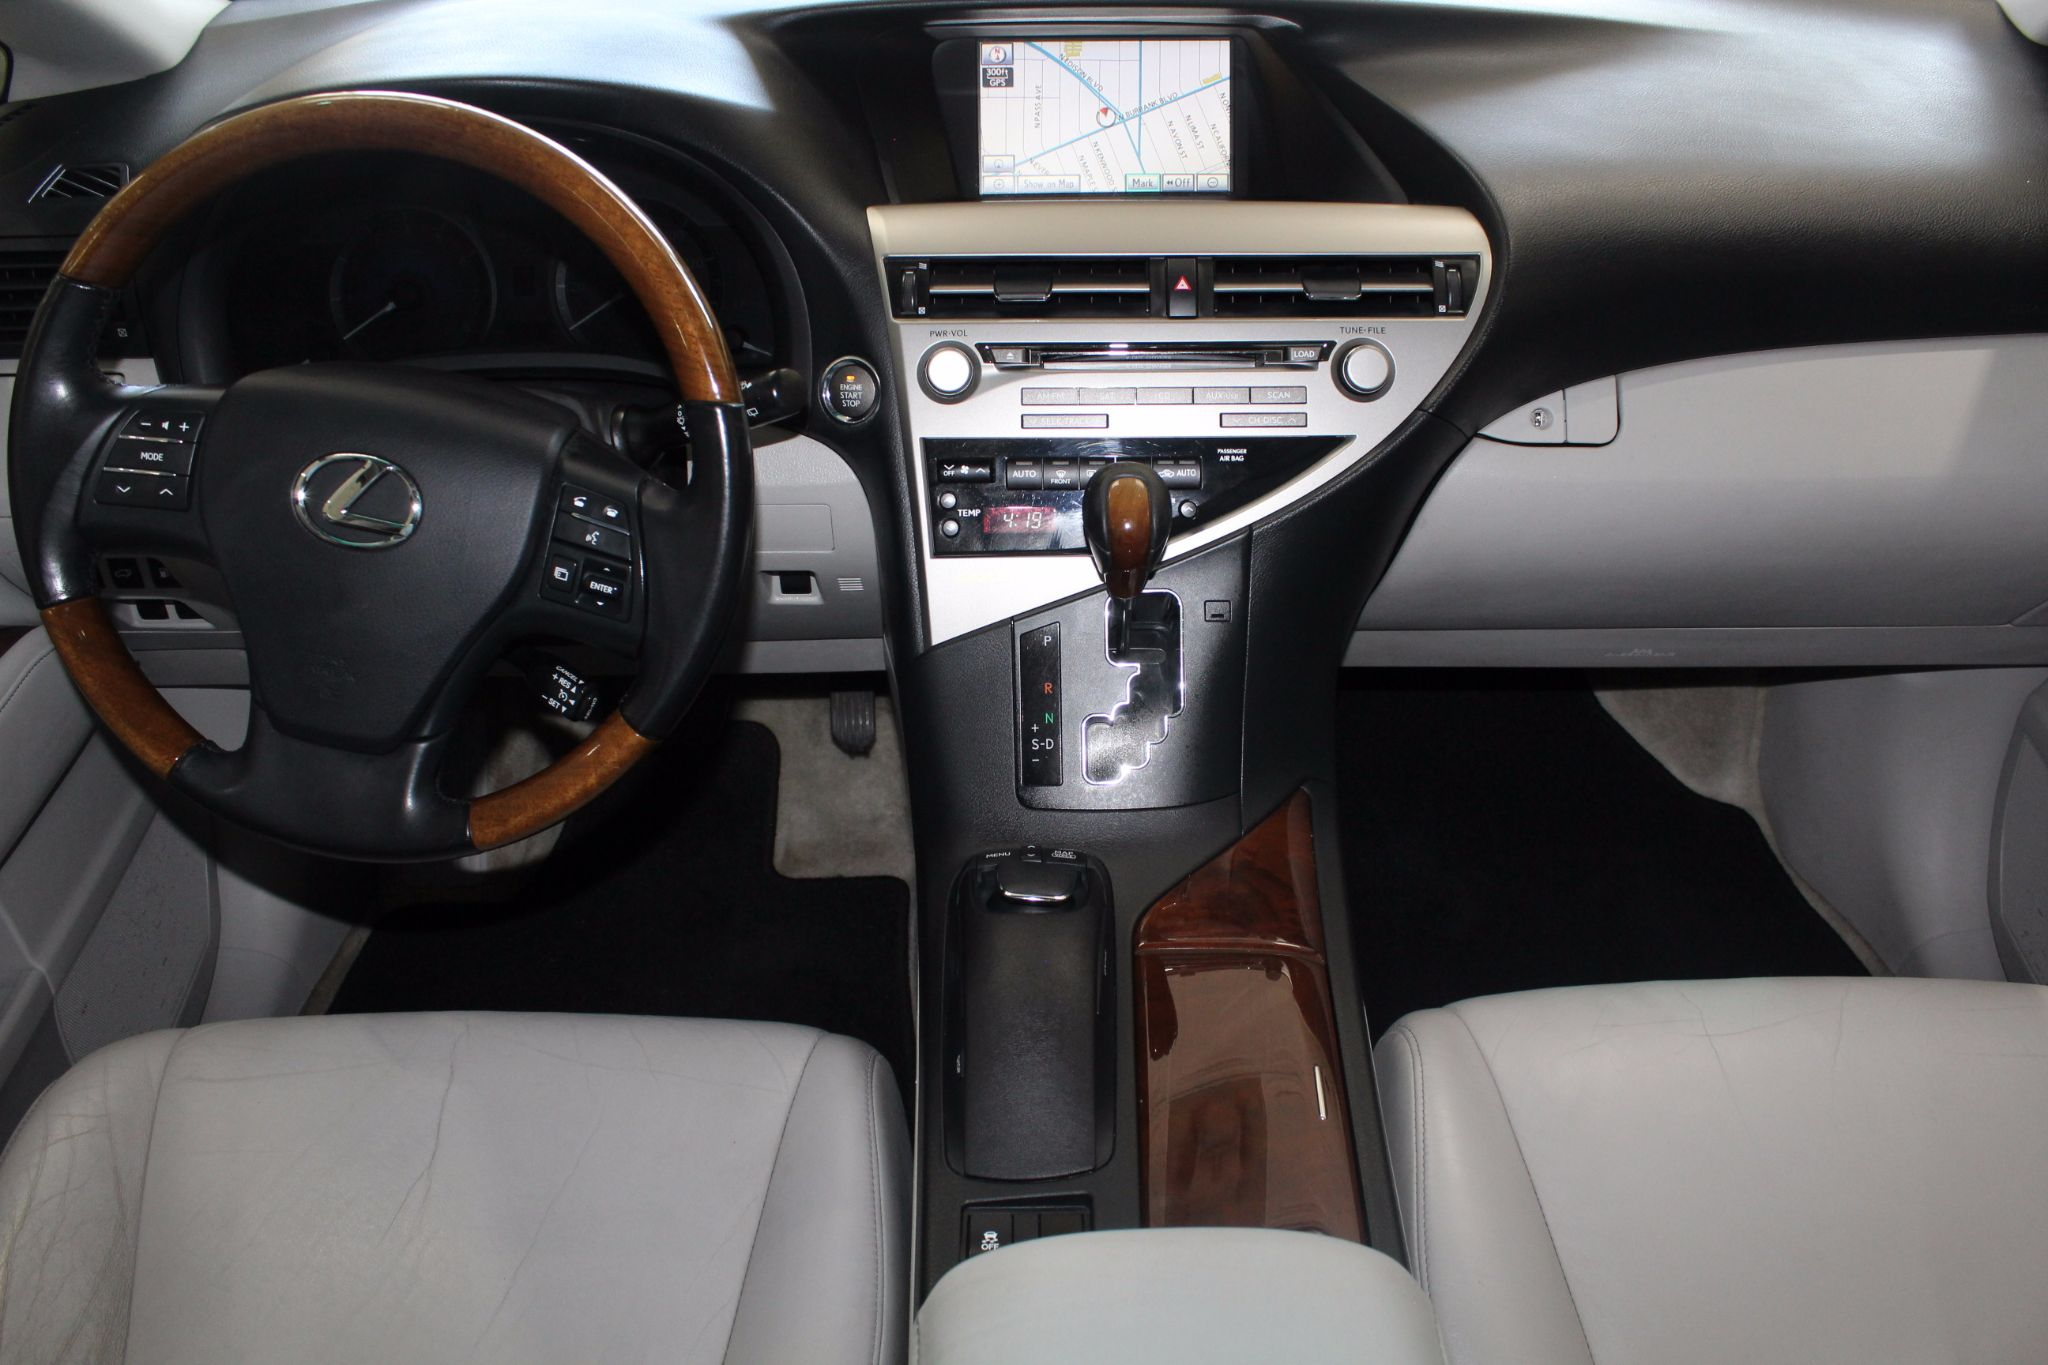 s of a Used 2010 Lexus RX 350 at Radical Auto